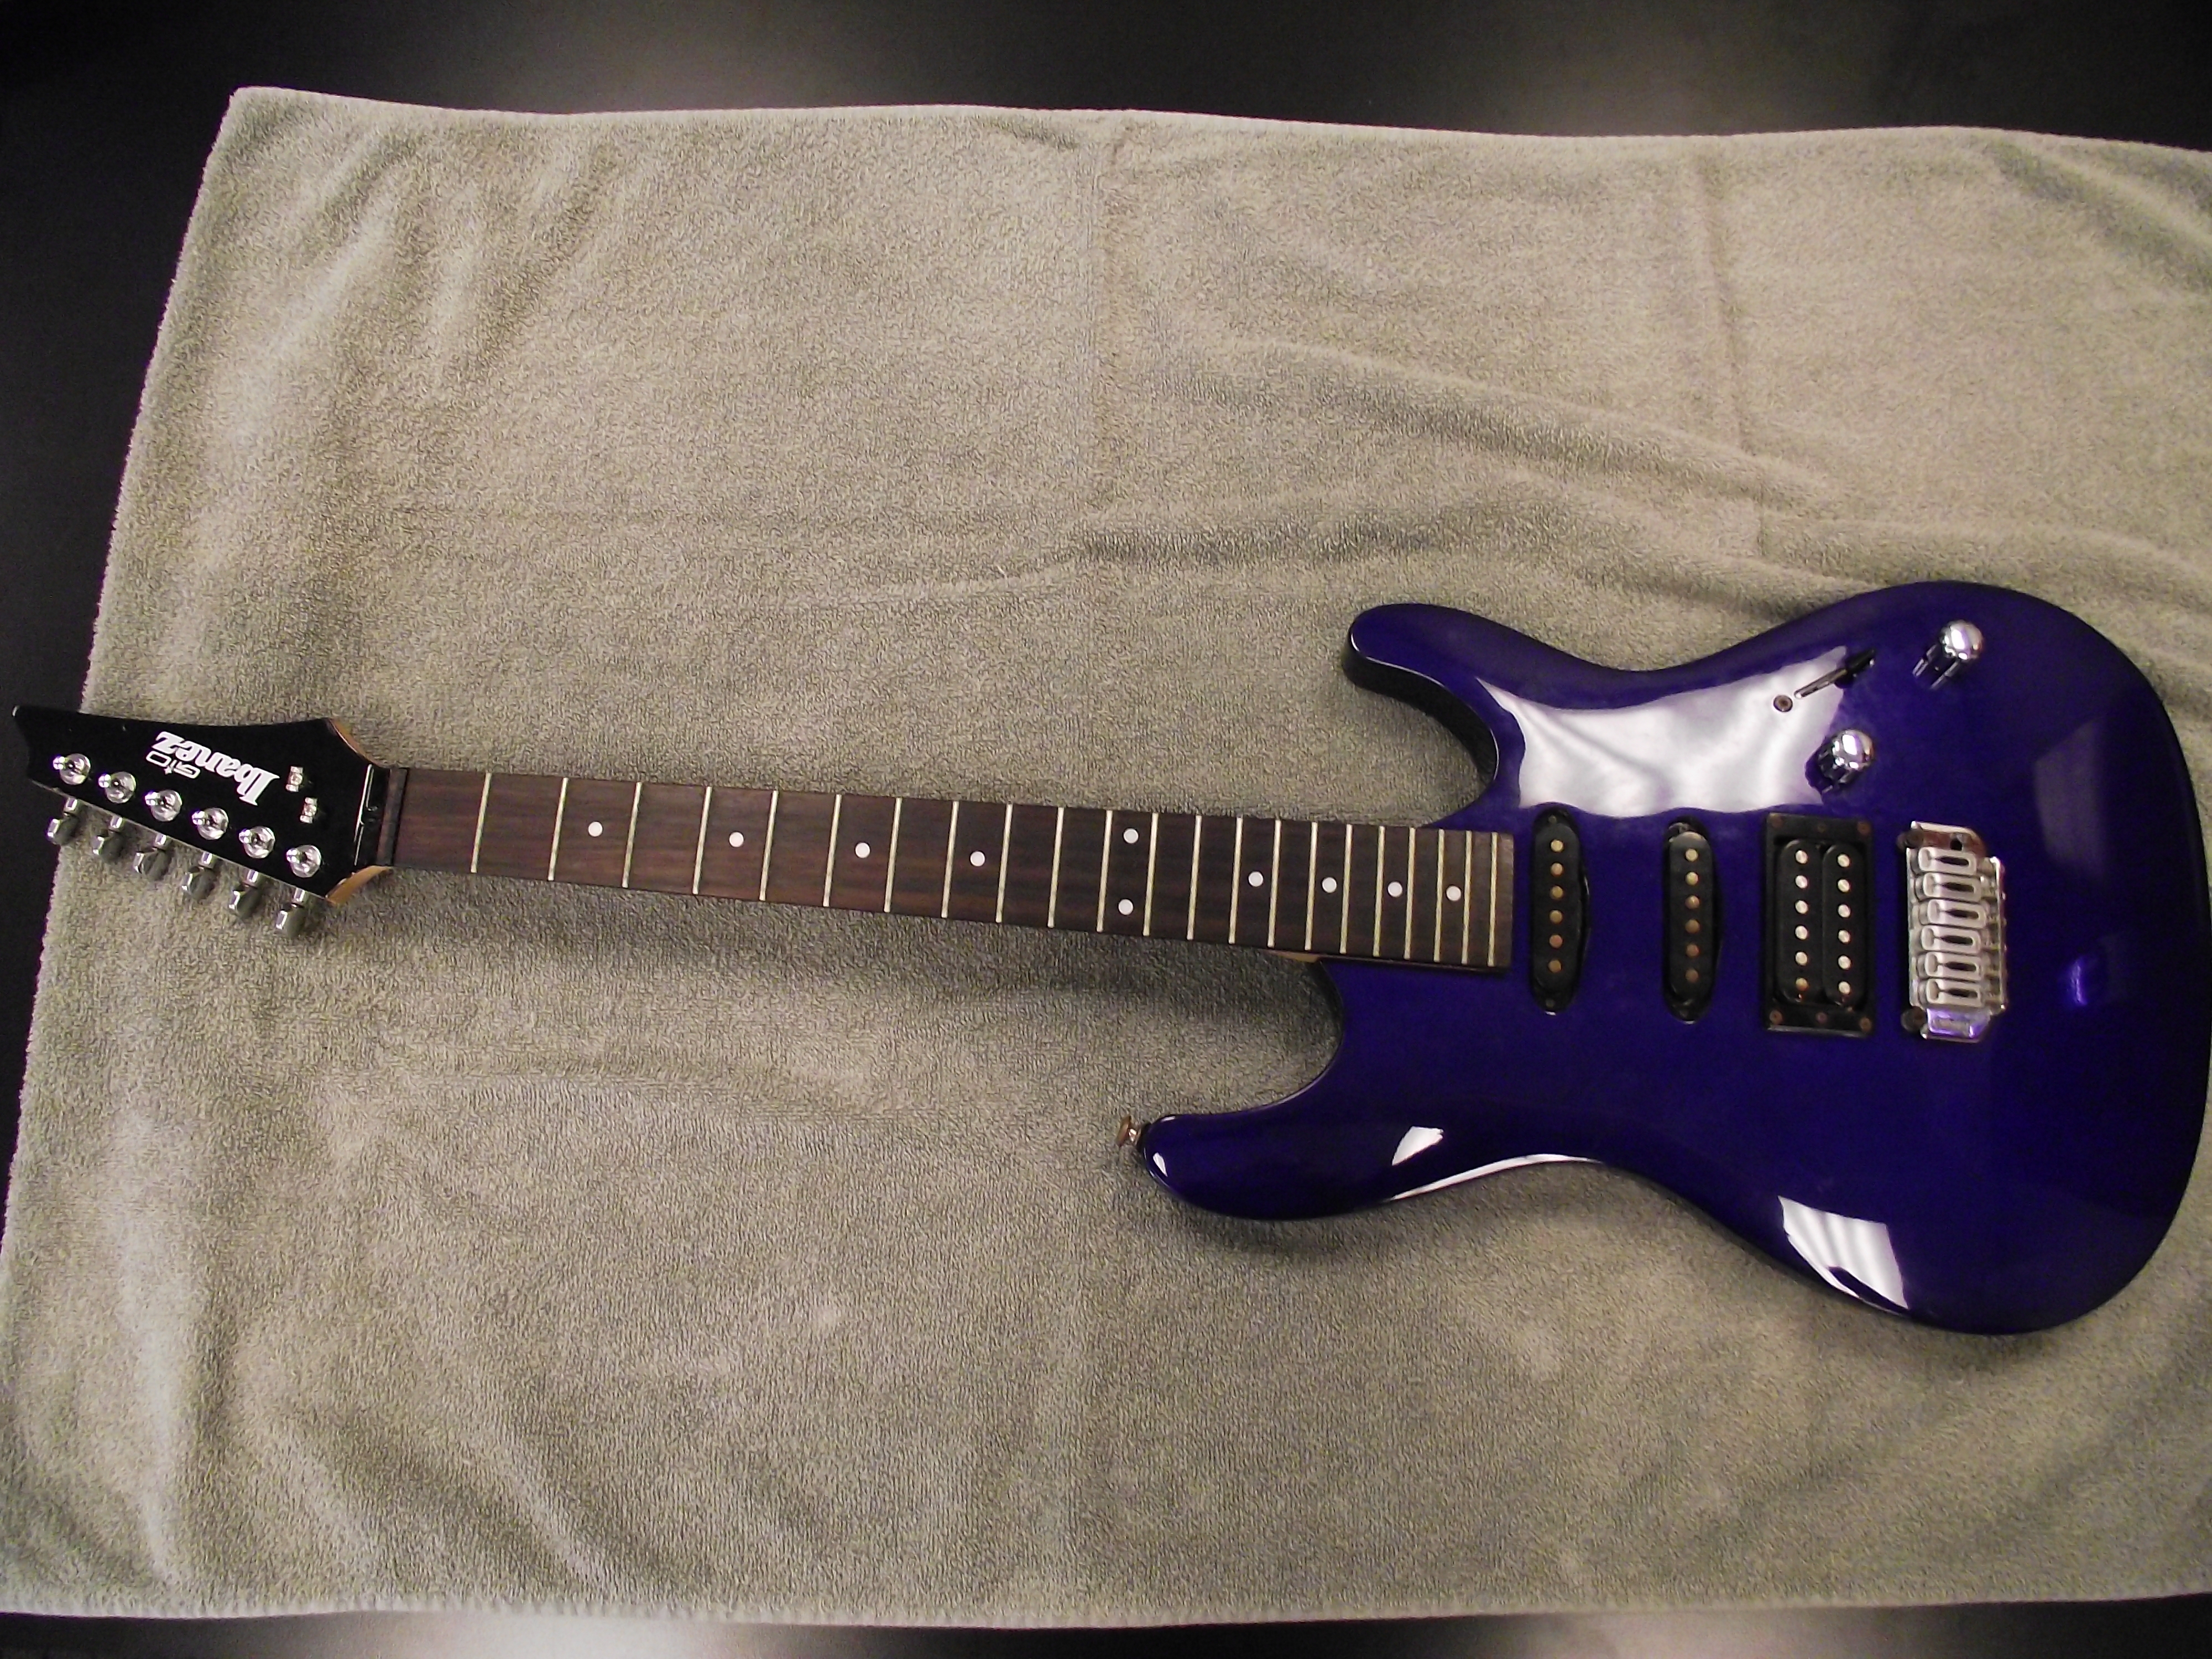 Ibanez Gsa60 Gio Electric Guitar Disassembly Ifixit Repair Guide Free Download Wiring Diagram